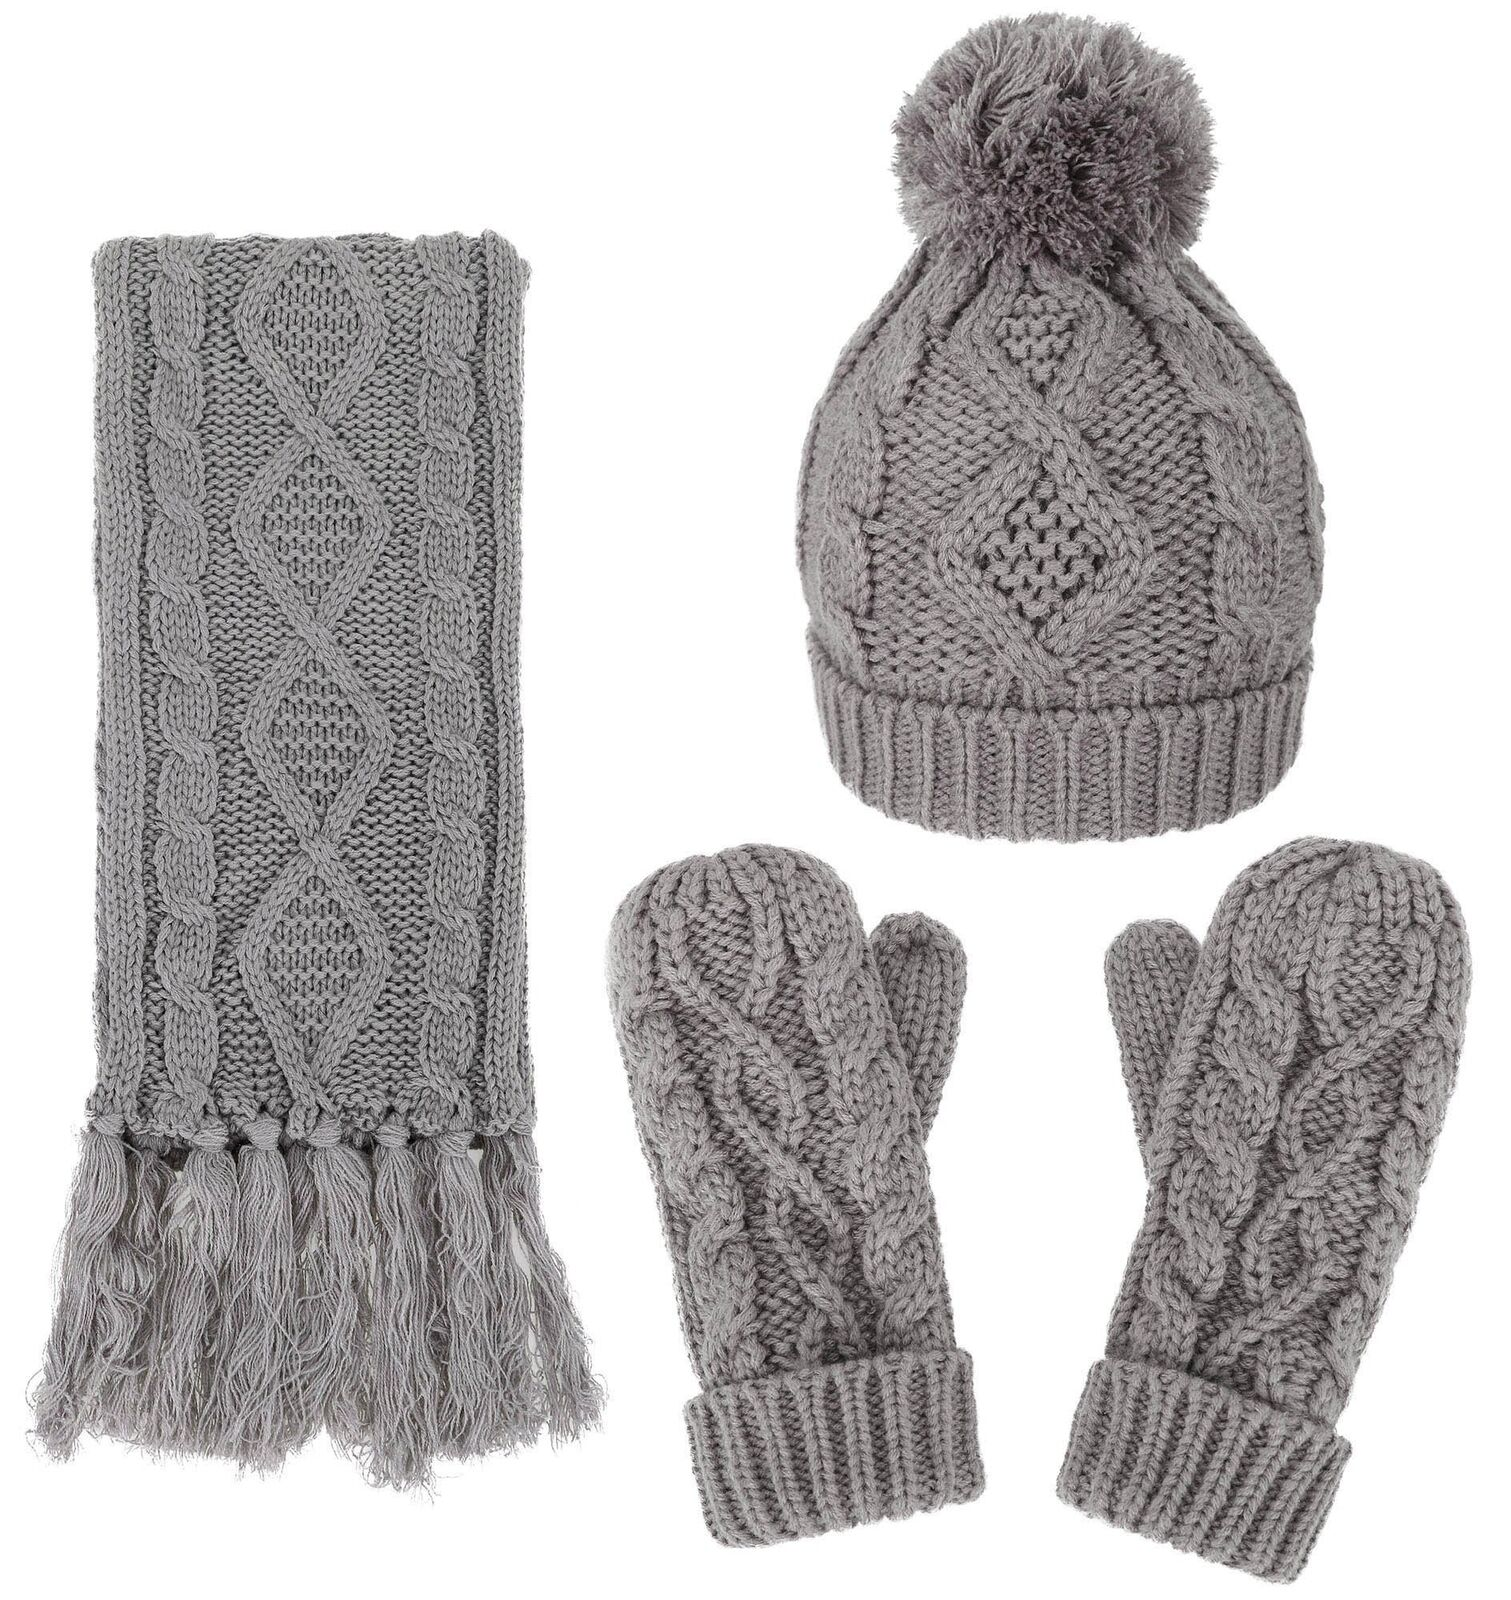 284b530a9d0 Andorra 3 in 1 Women Soft Warm Thick Cable Knitted Hat Scarf ...